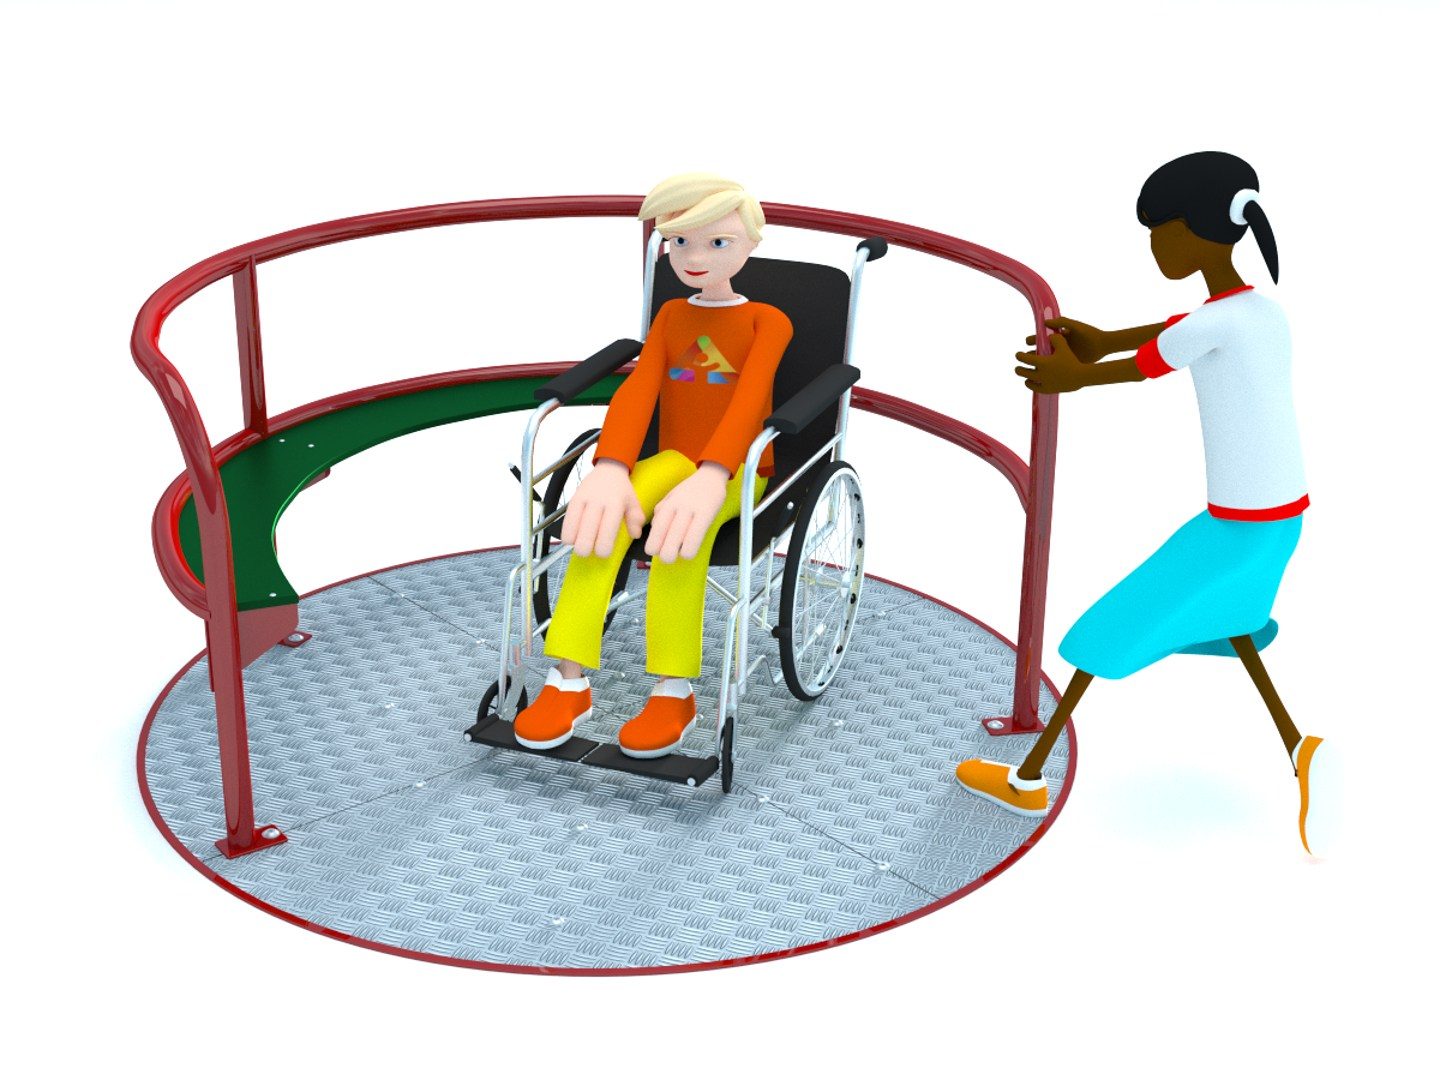 1440x1080 All Inclusive Wheelchair Accessible Playground Equipment